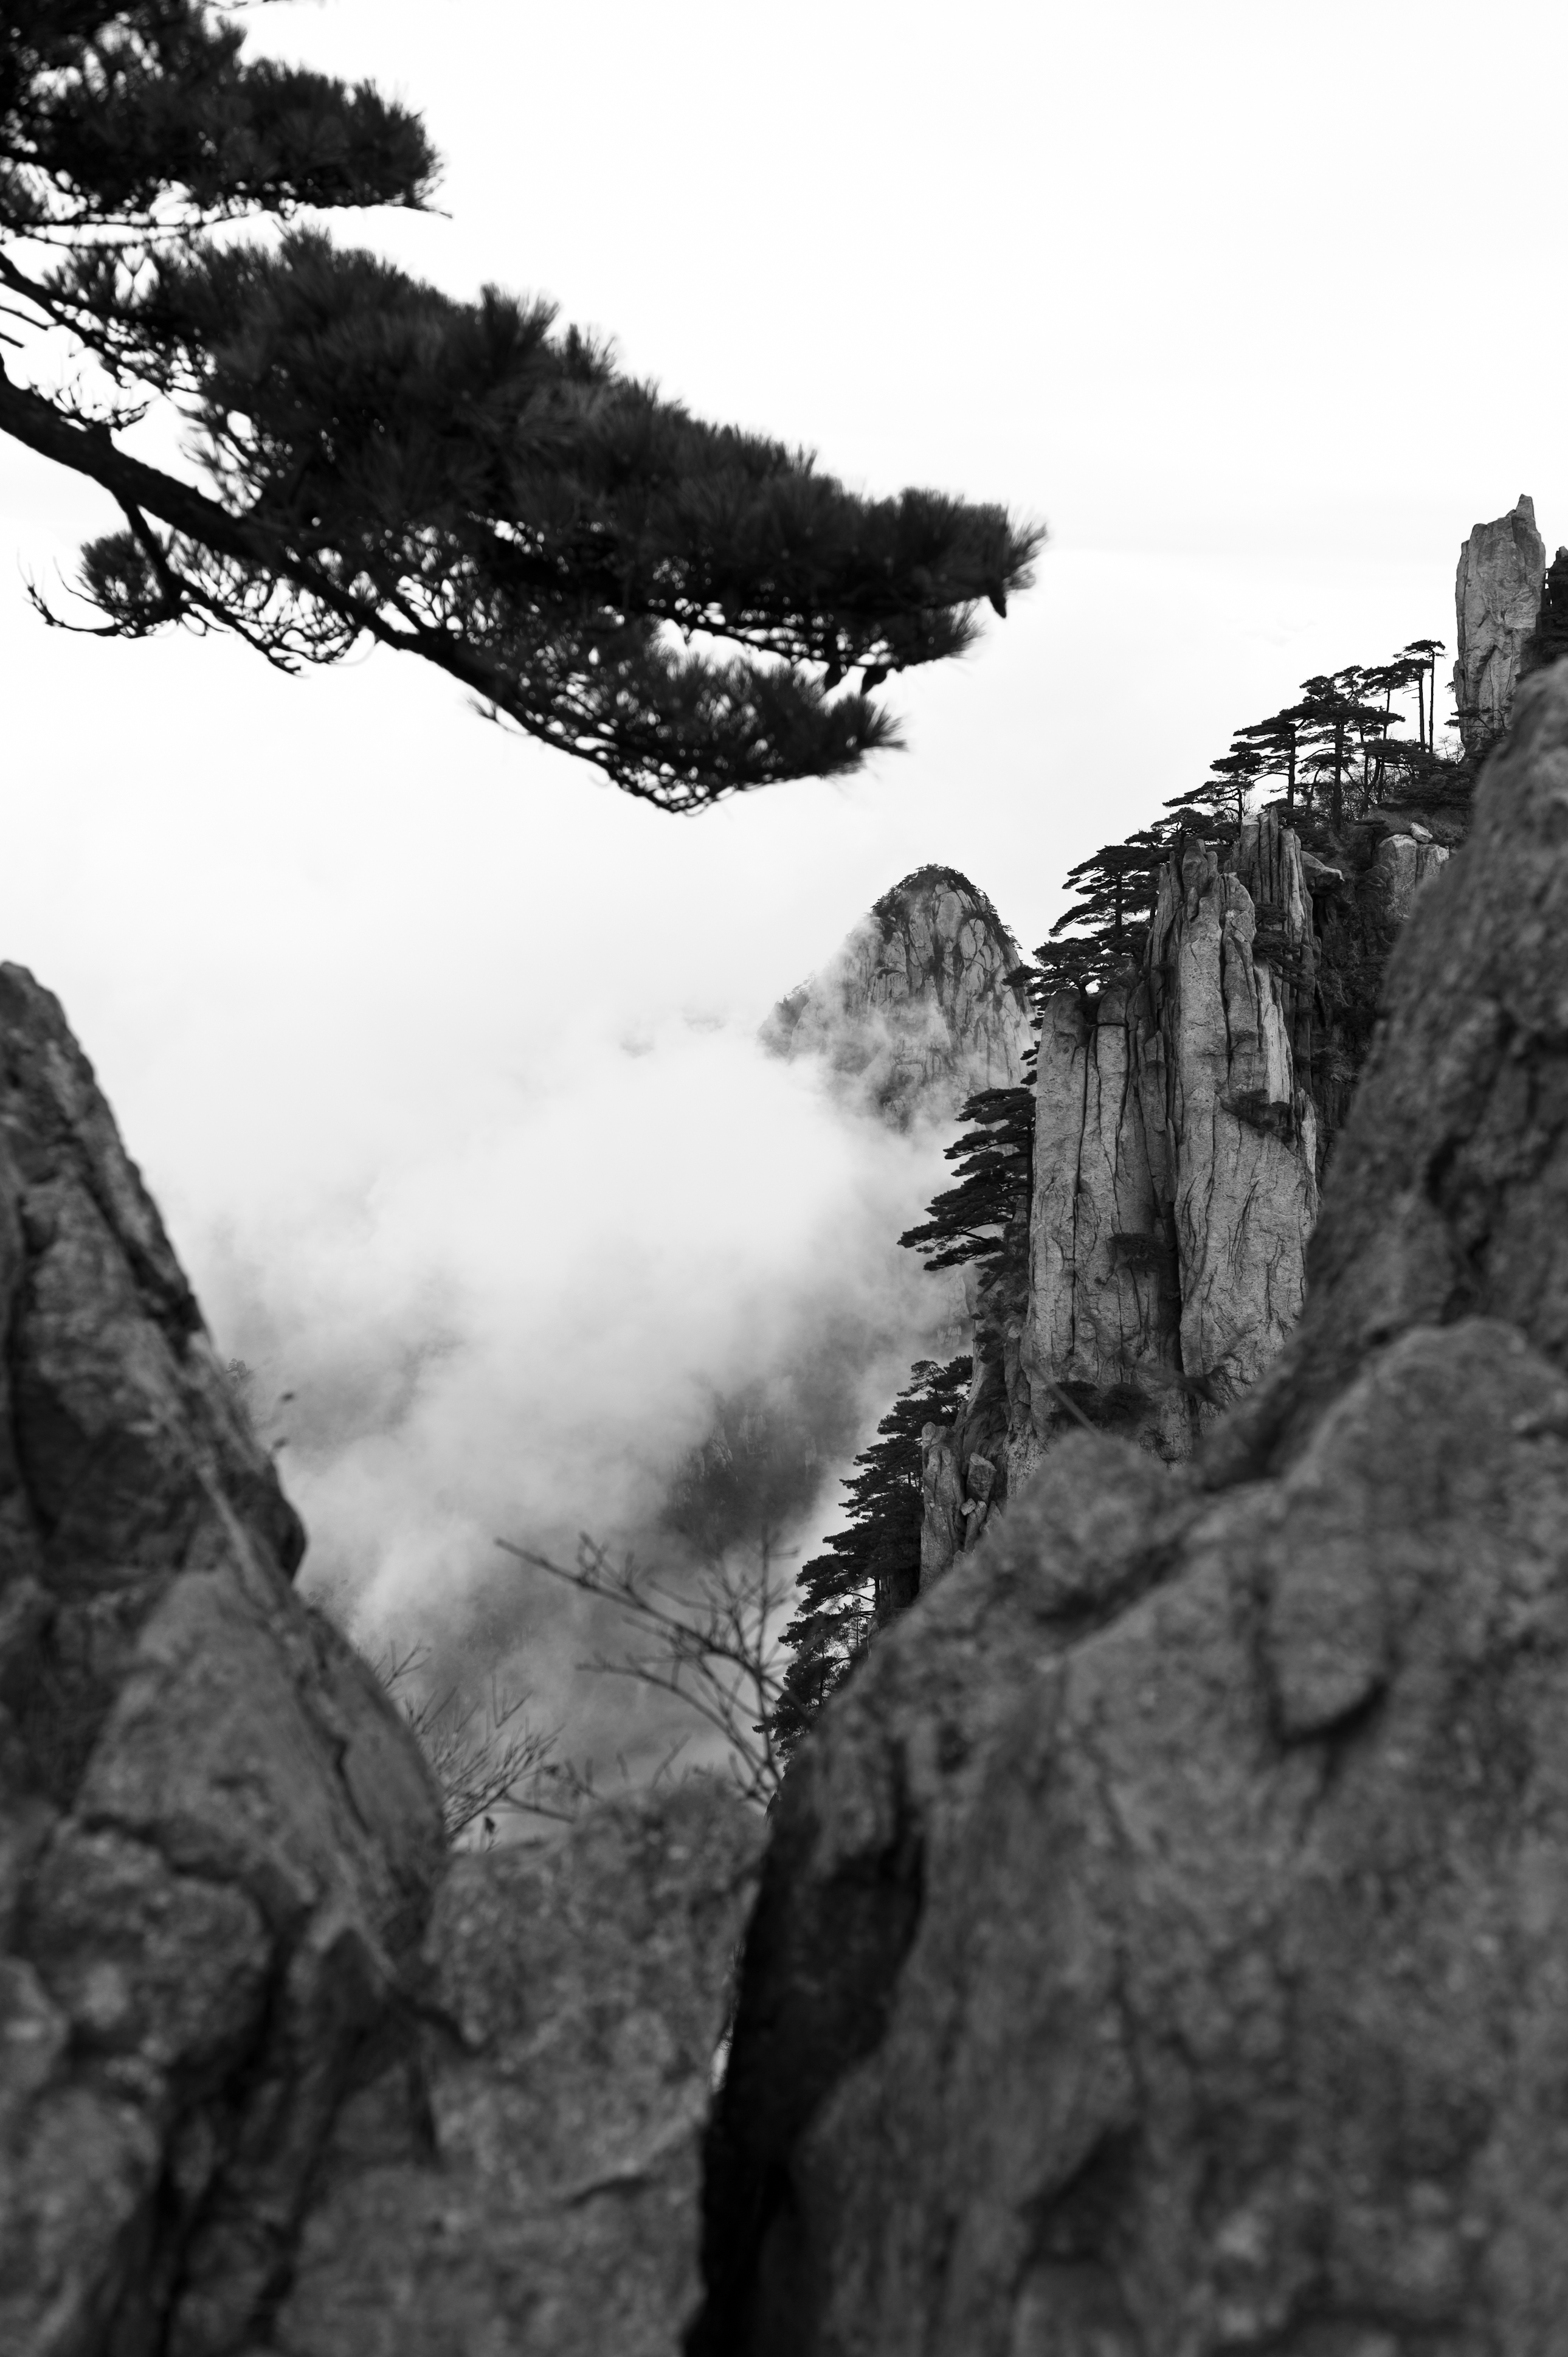 Flickr - Pine Trees (16) - Huangshan, China